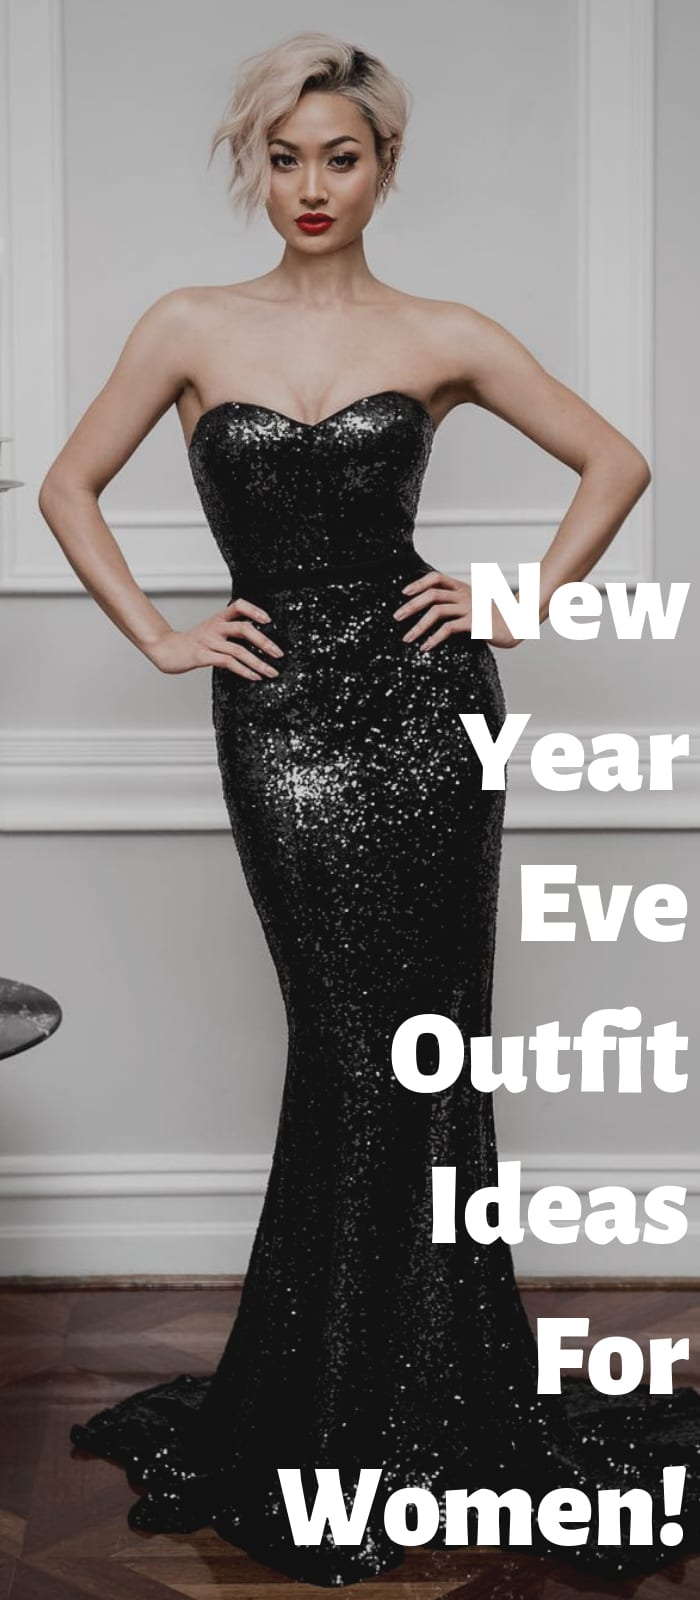 New Year Eve Outfit Ideas For Women!